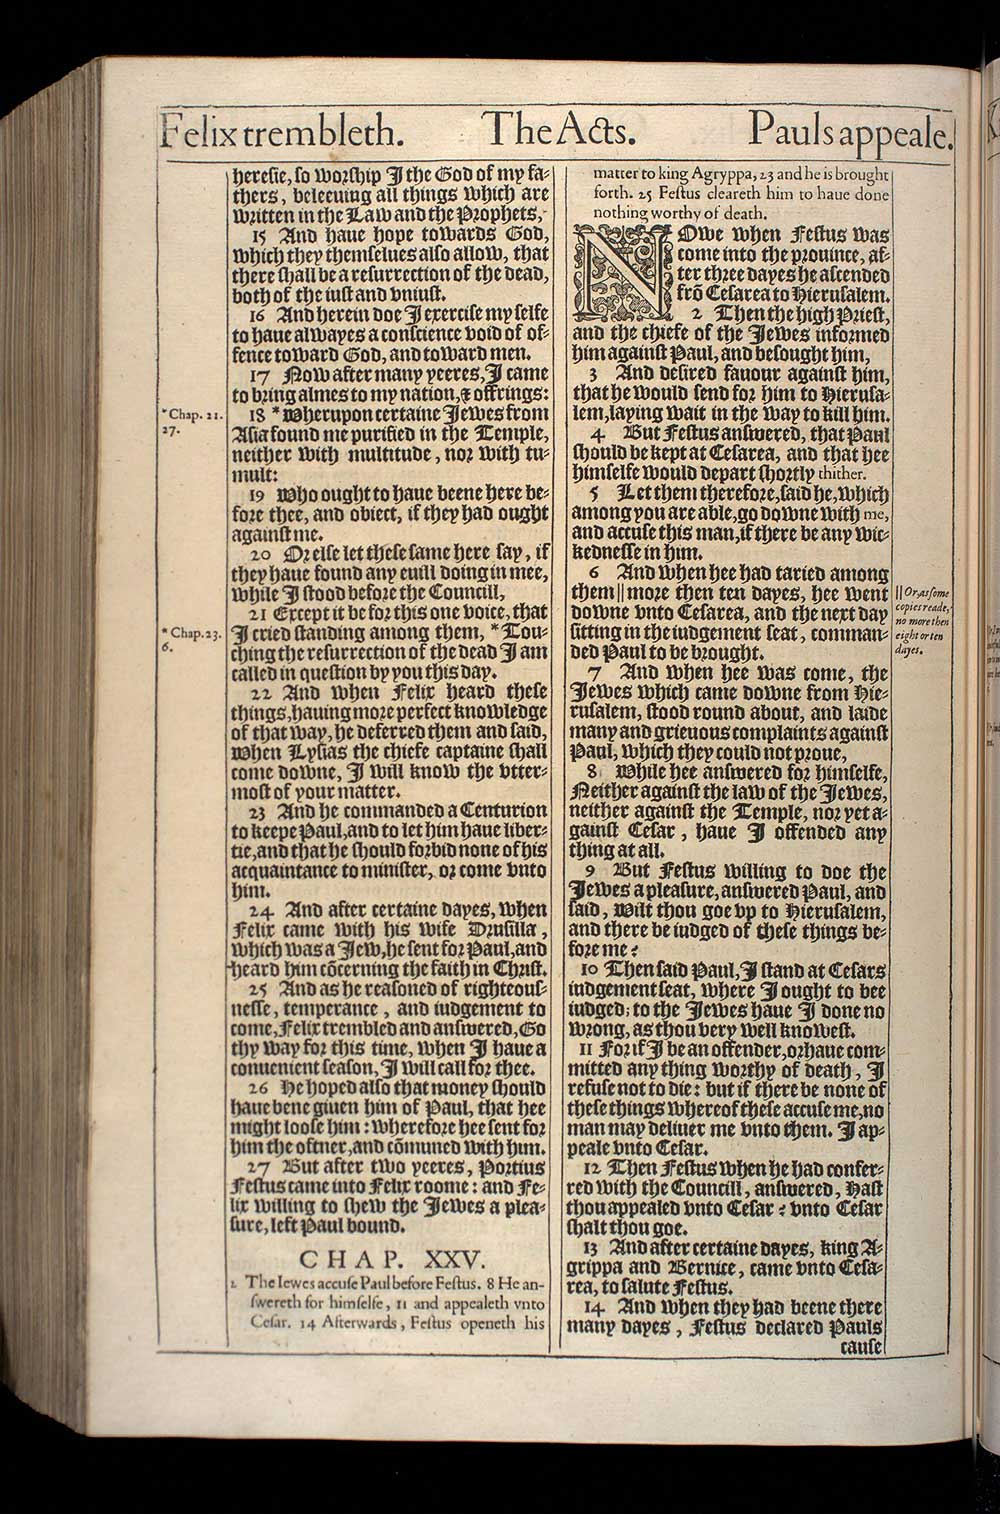 Acts Chapter 24 Original 1611 Bible Scan